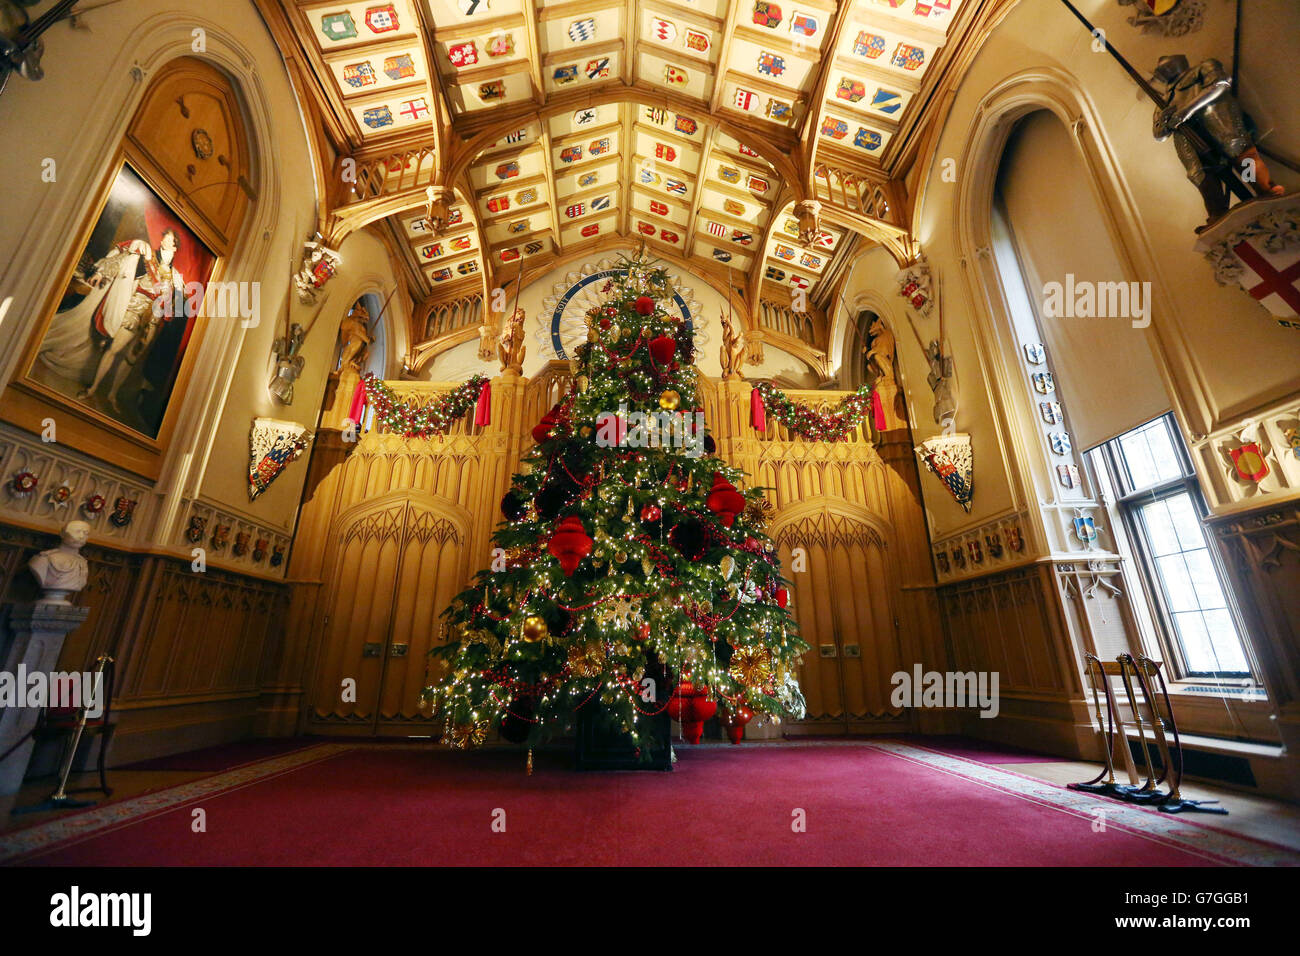 Customs and Traditions - Christmas - Nordmann Fir Tree  - St George's Hall - Windsor Castle - Stock Image